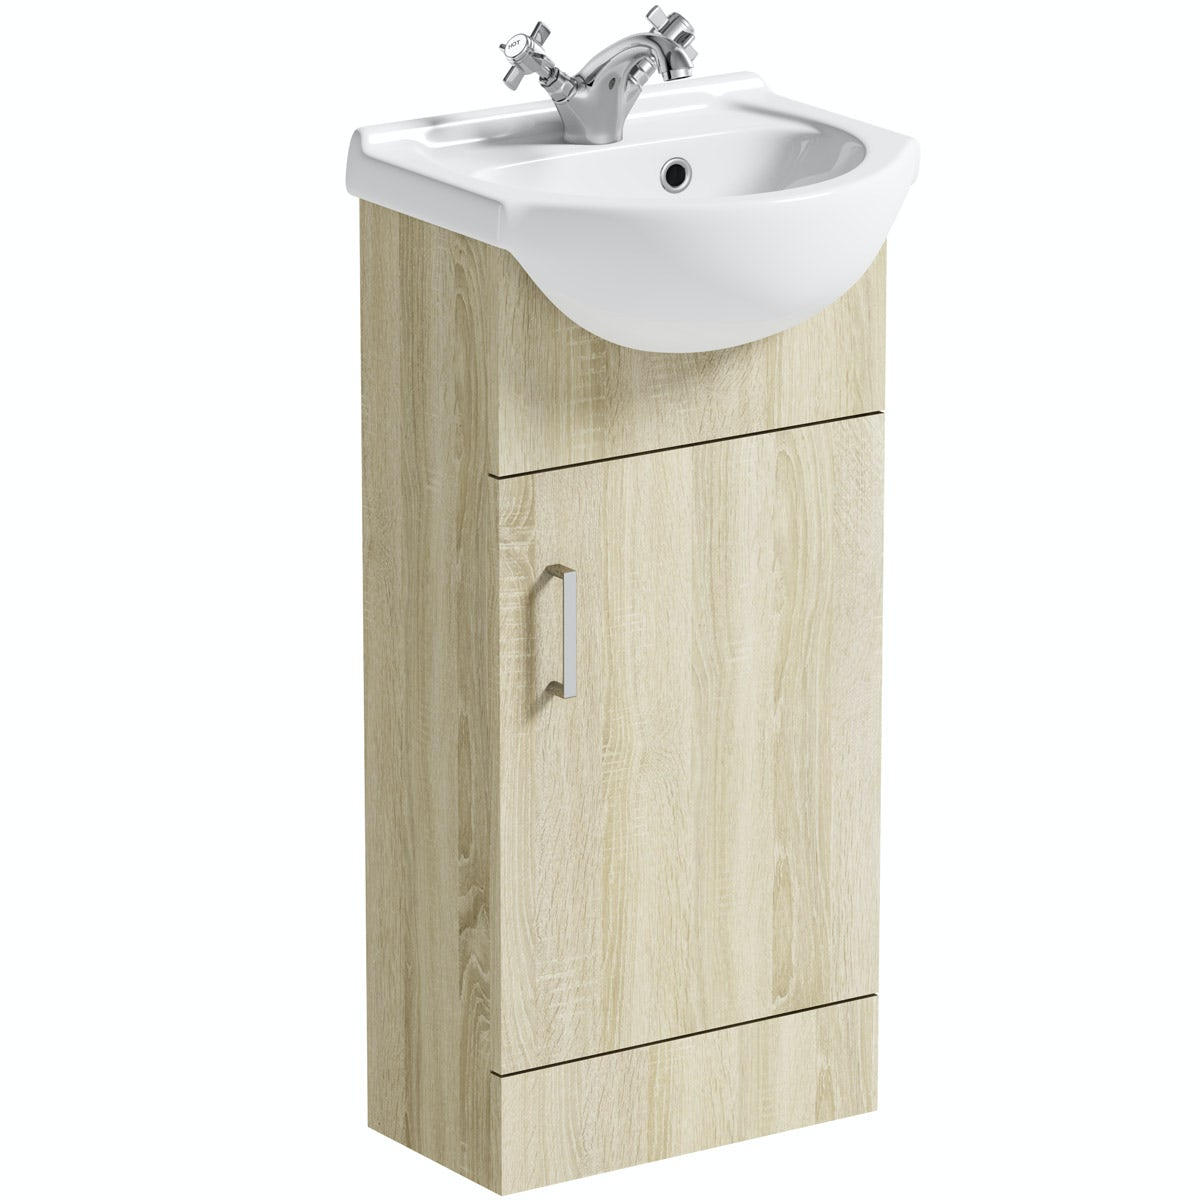 Orchard Eden oak vanity unit and basin 410mm